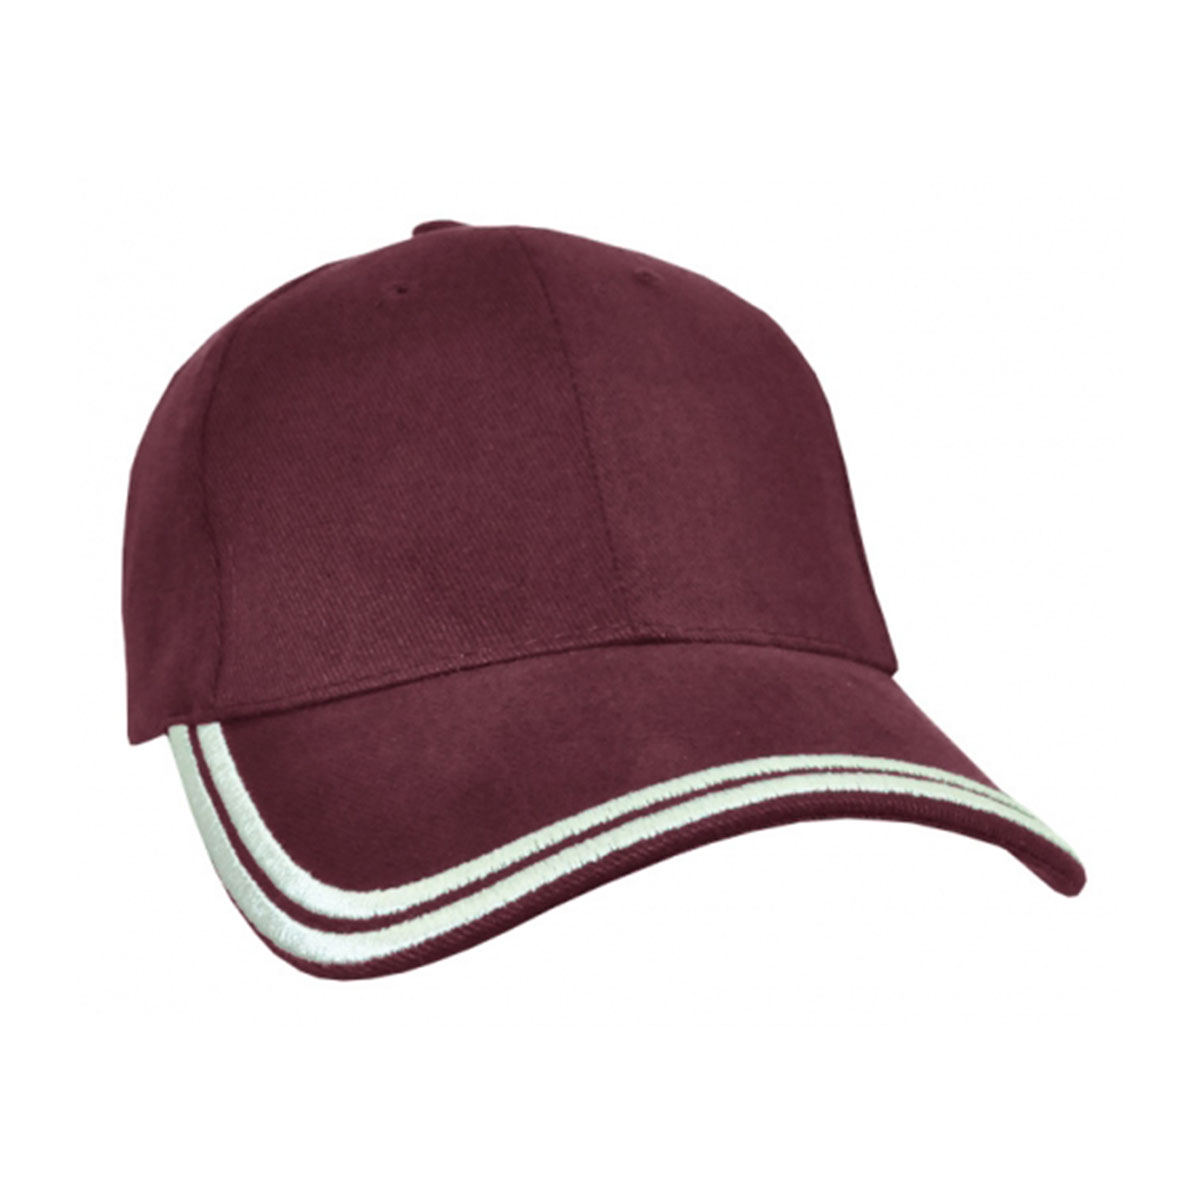 HBC Double Piping Cap-Maroon / White